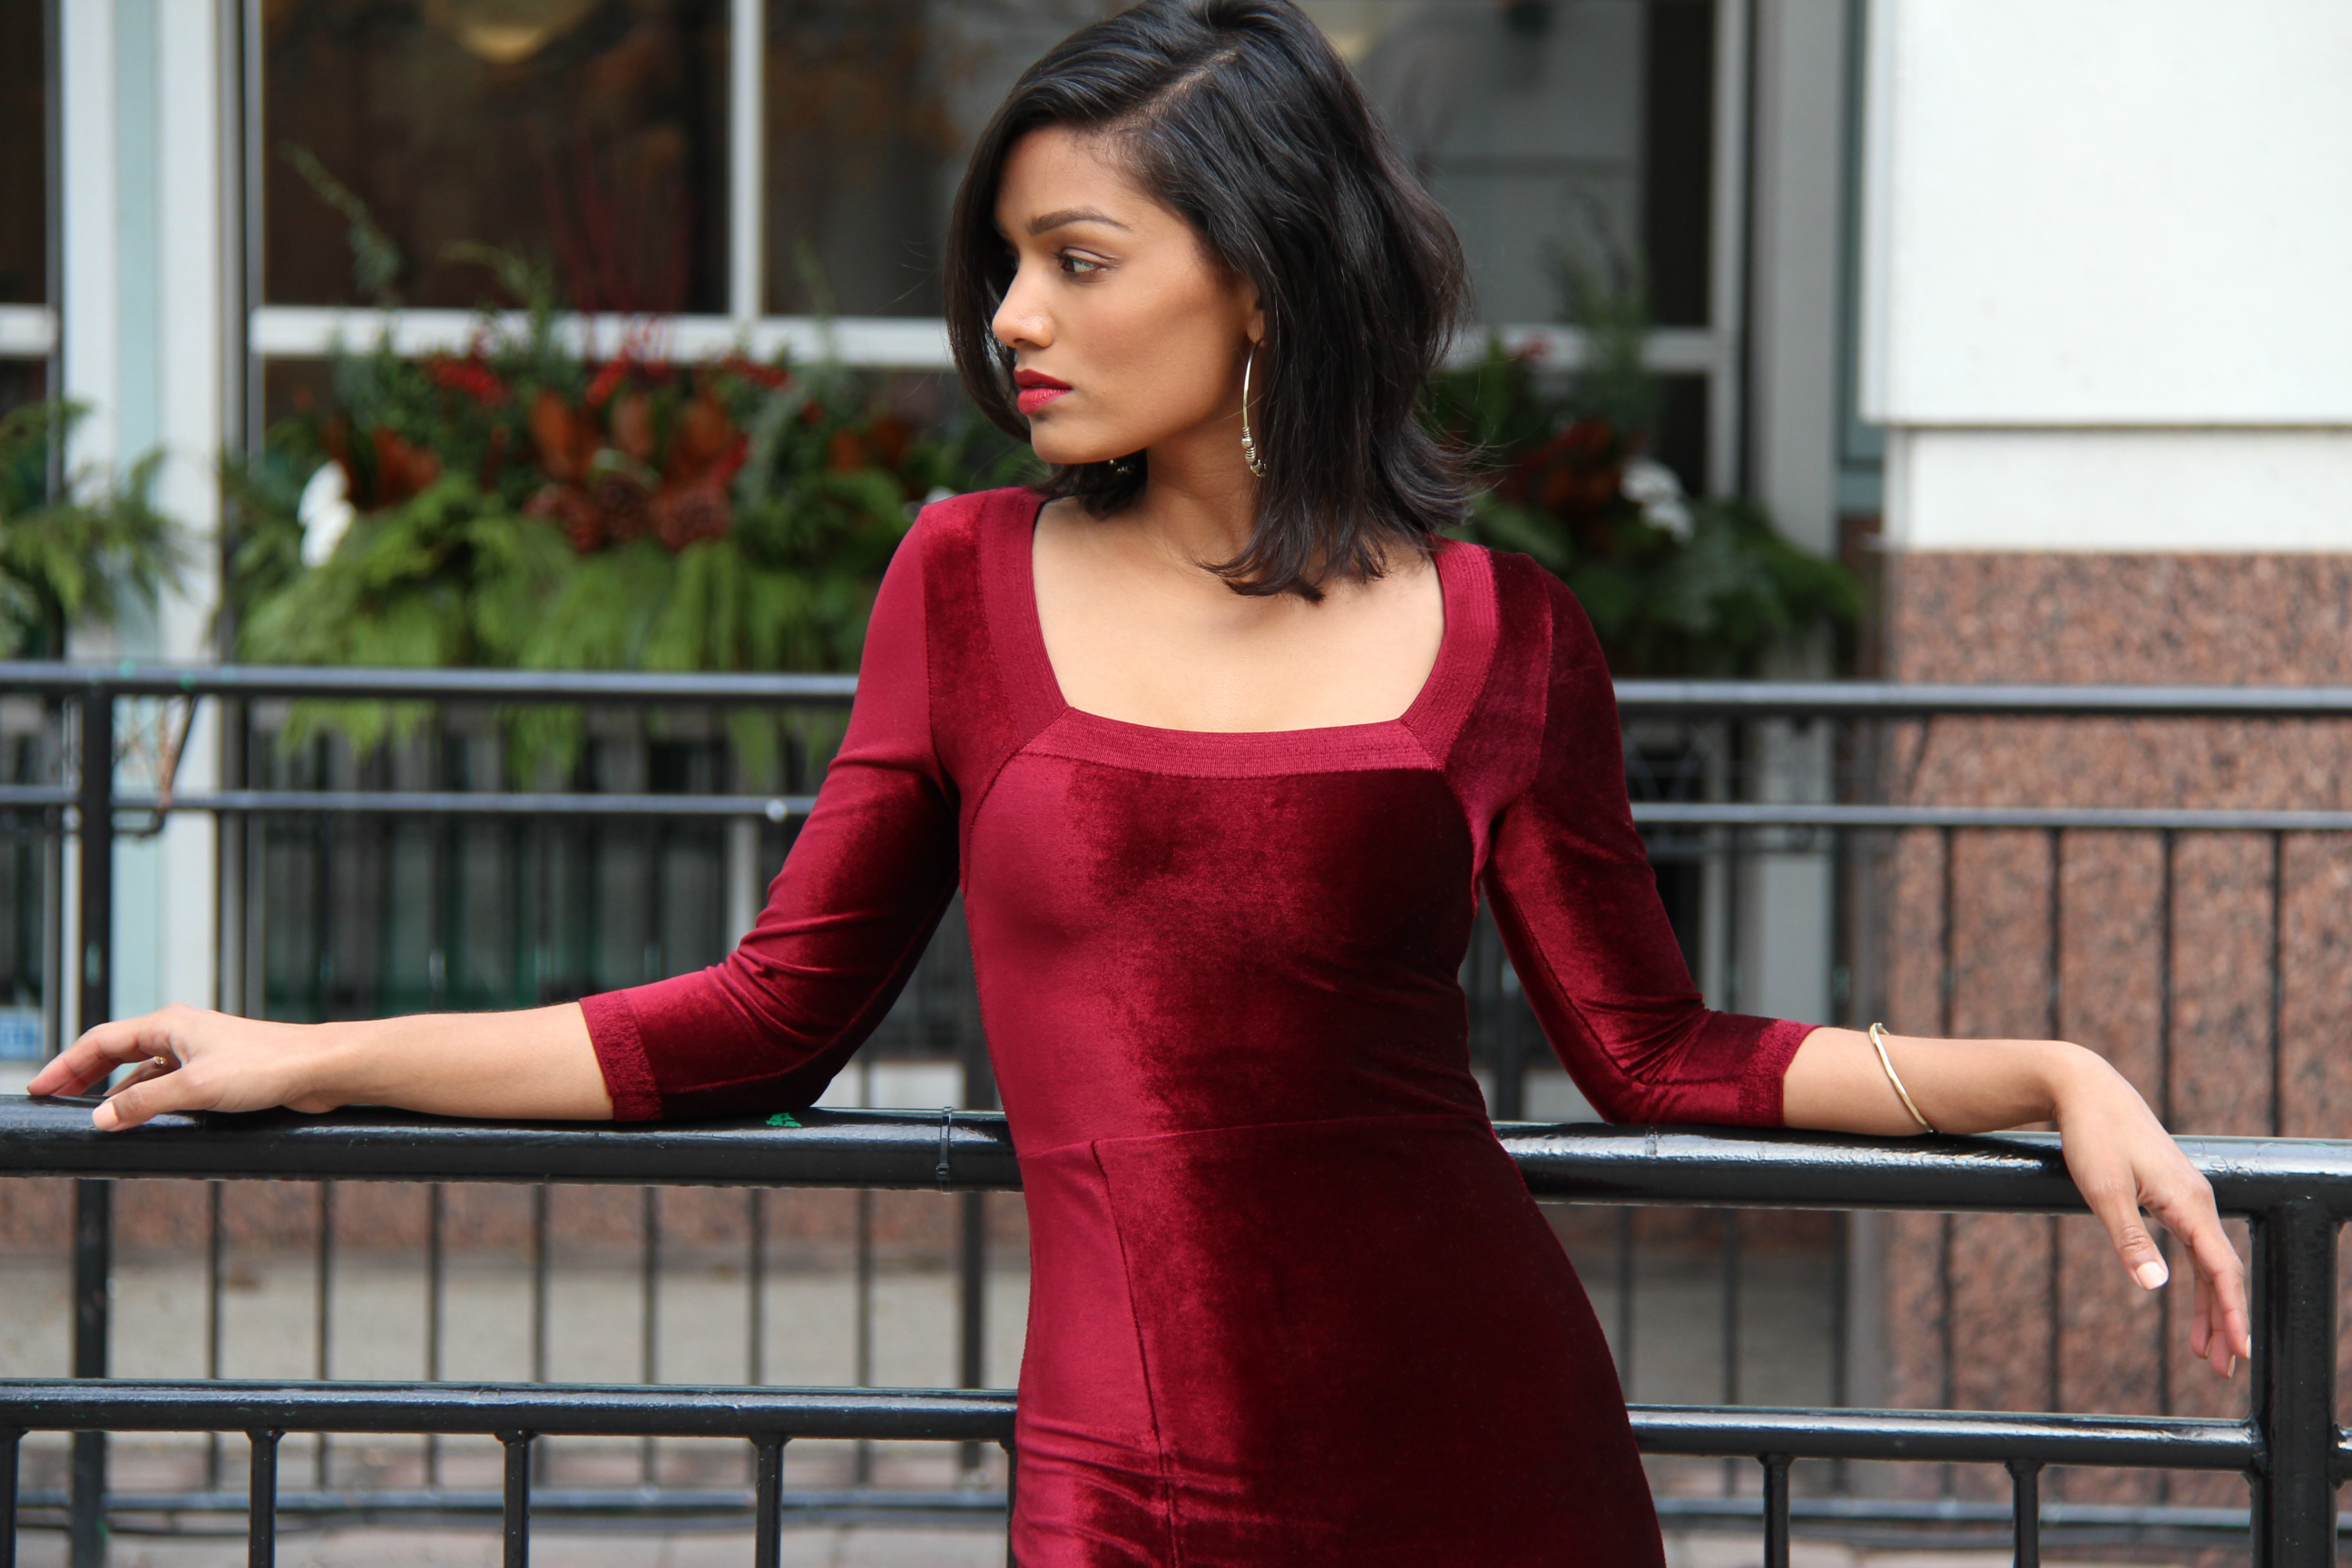 Sweet Shard DIY Red Velvet Dress High Slit. Medium Shot of Sharadha wearing dress, leaning back against a black fence